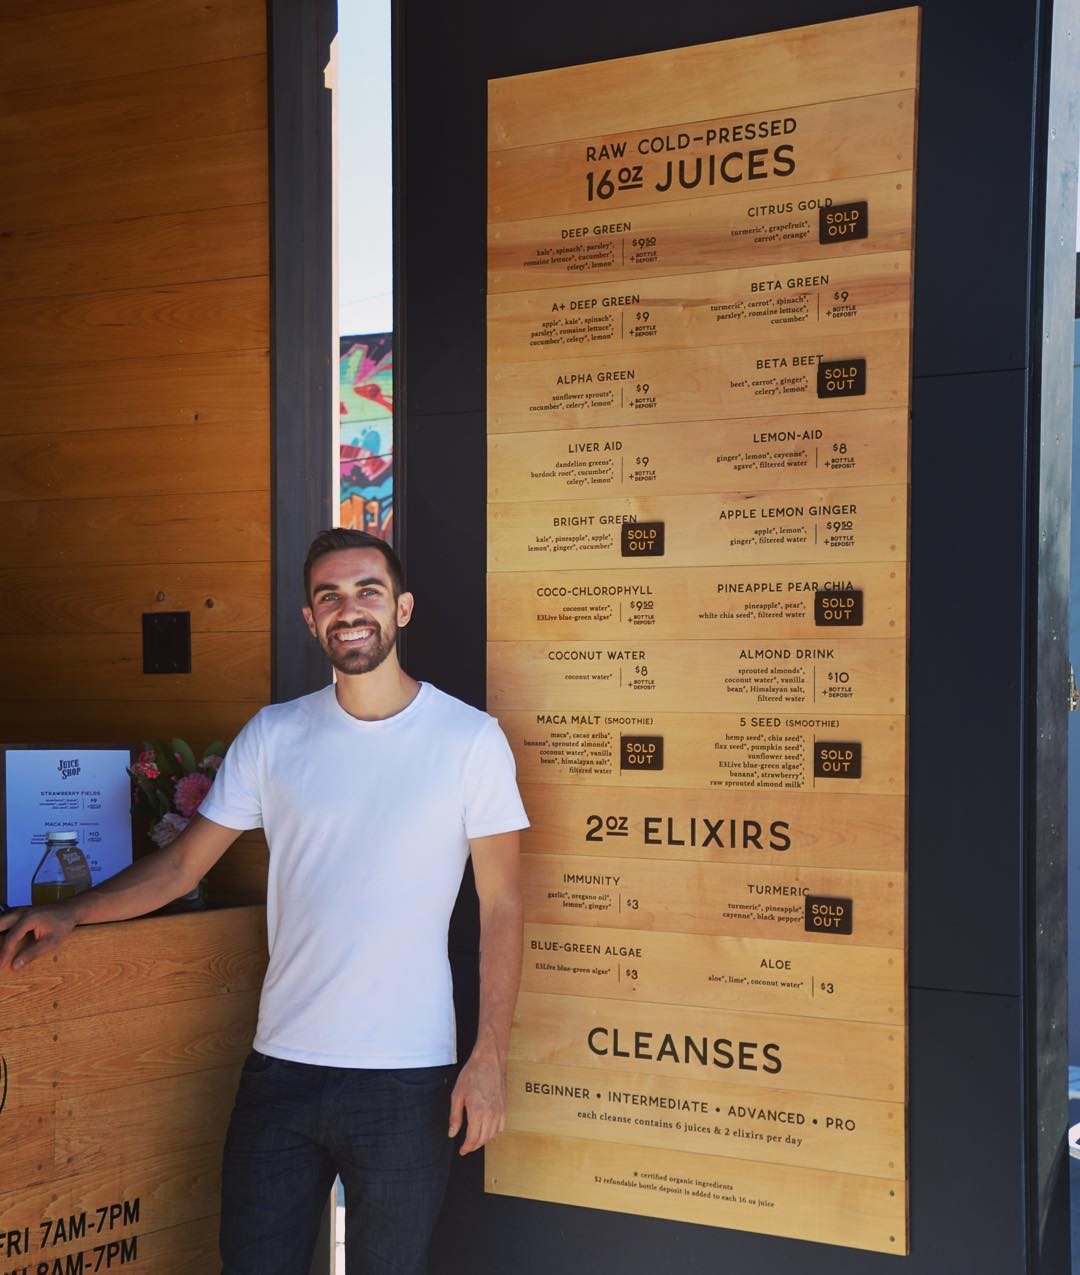 The_new_Juice_Shop_menu_in_Hayes_Valley._I_m_so_proud_of_how_it_turned_out__Stop_on_by_for_a_juice_____.jpg